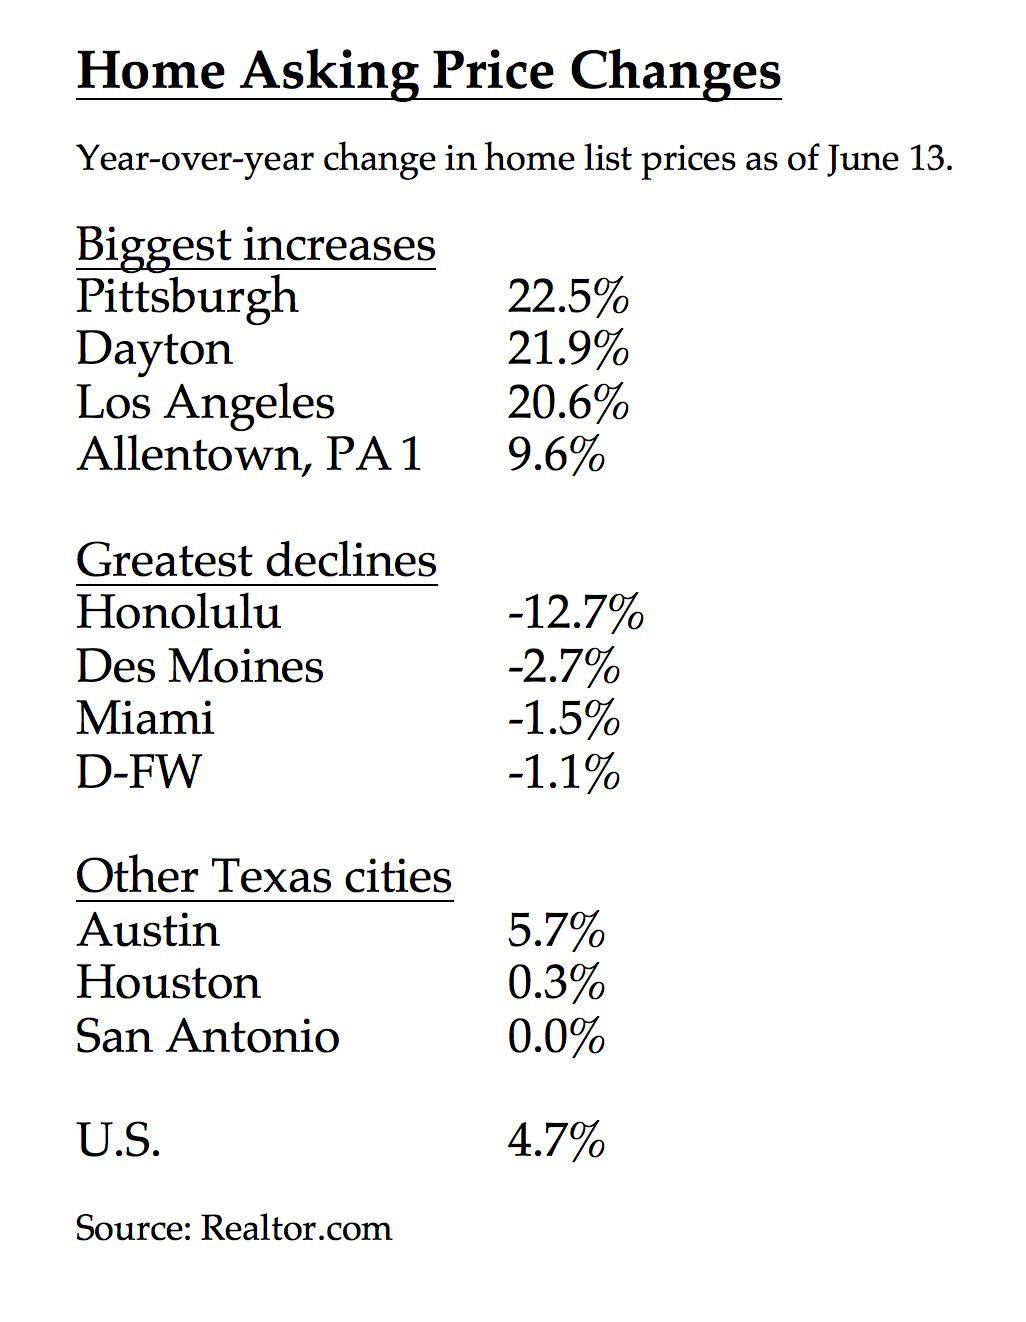 D-FW is one of the few markets with lower asking prices.